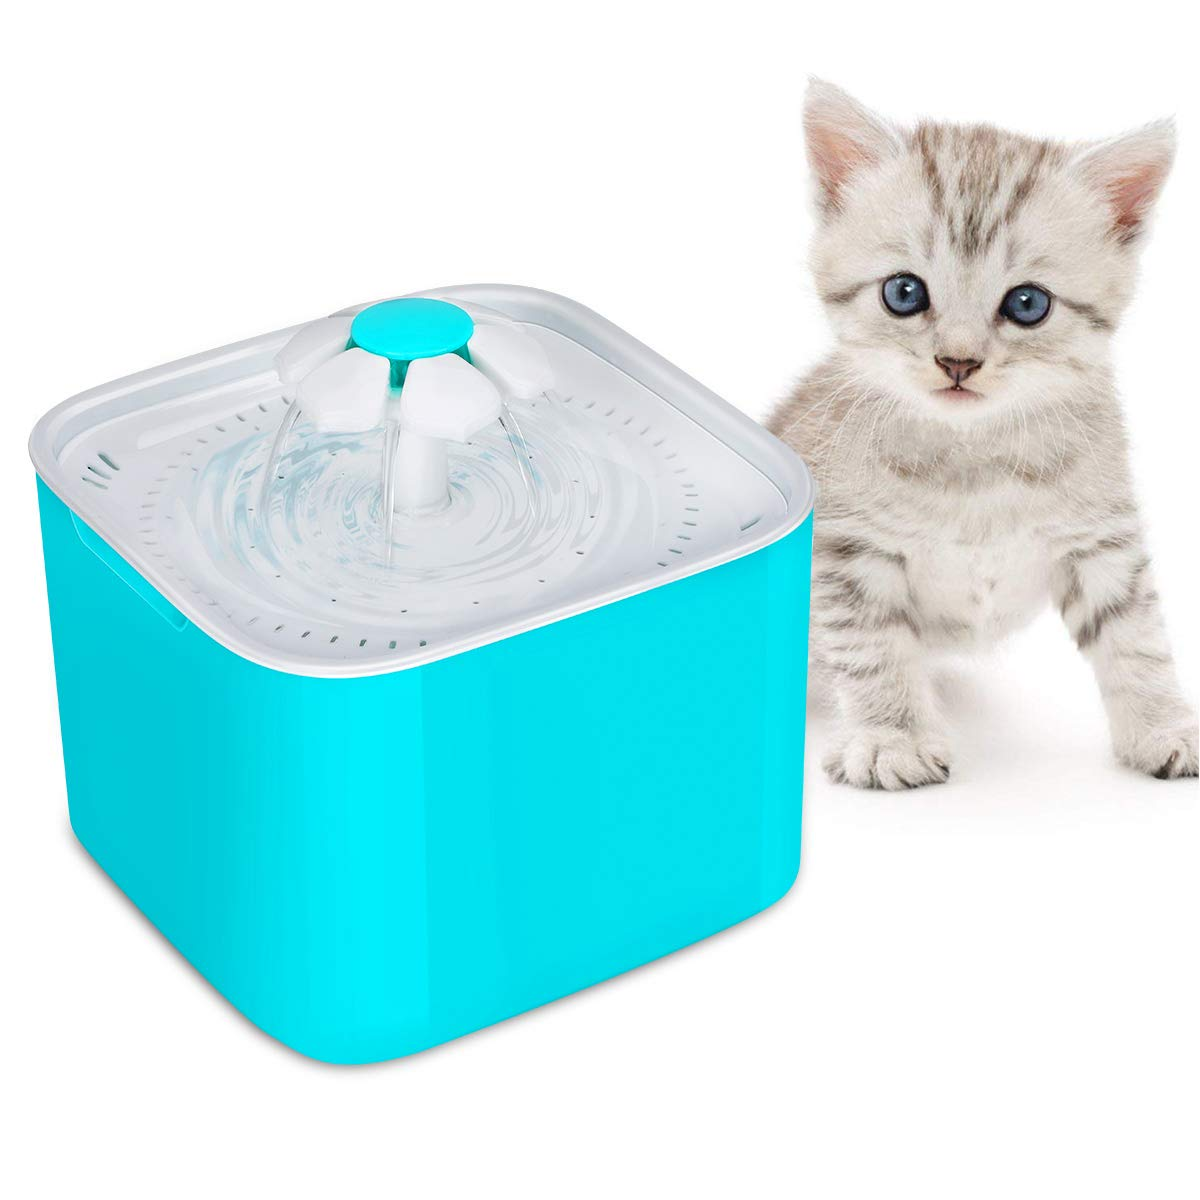 bluee HURRISE Flower Fountain 2L Pet Drinking Fountain Pet Water Fountain Dispenser for Cats and Small Dogs (bluee)